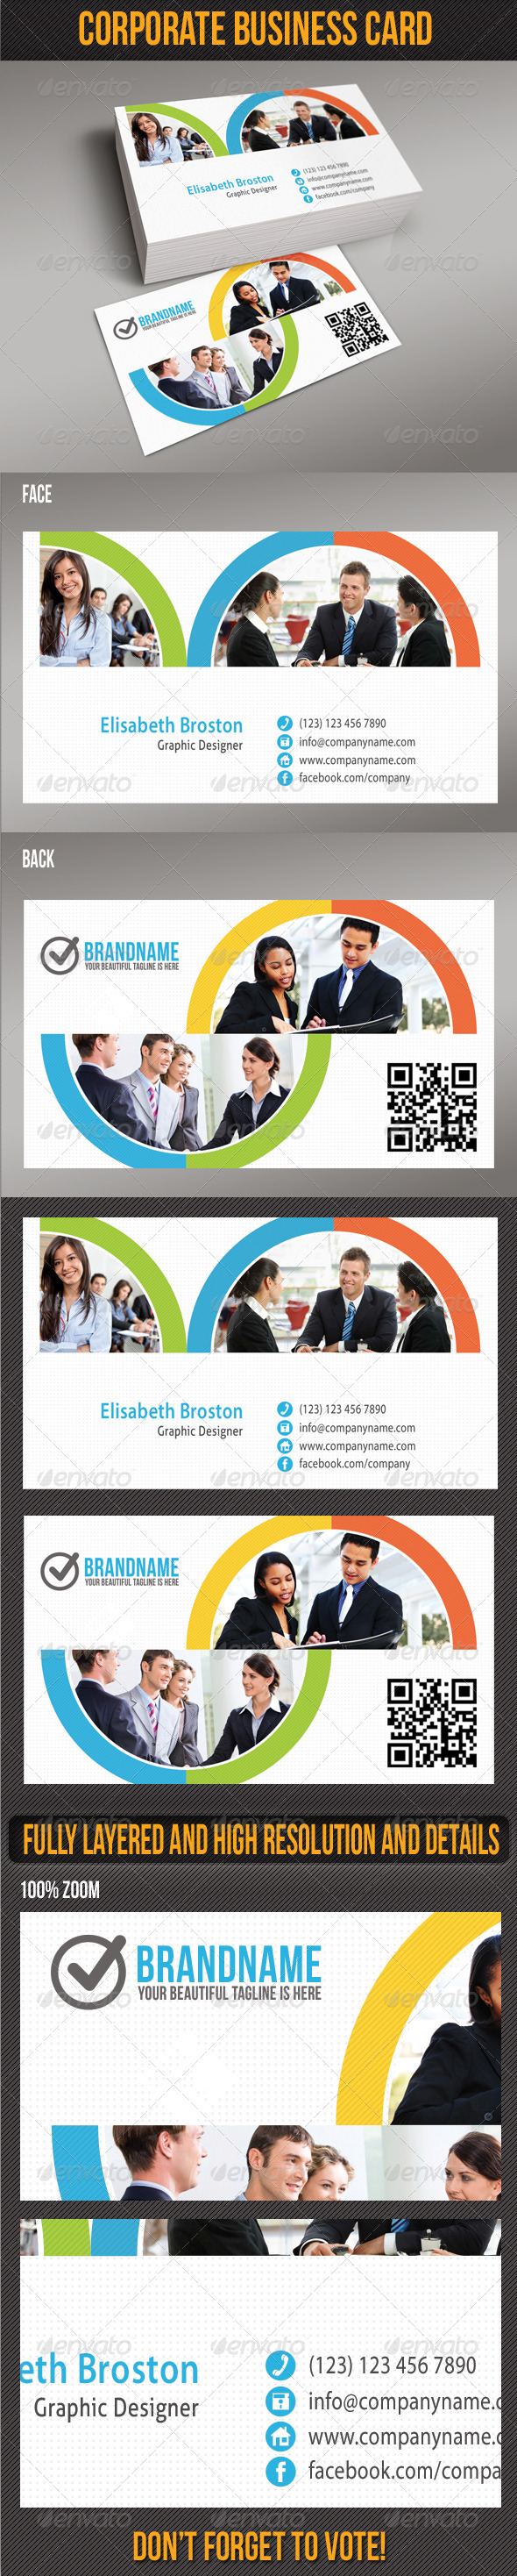 GraphicRiver Corporate Business Card 5220590